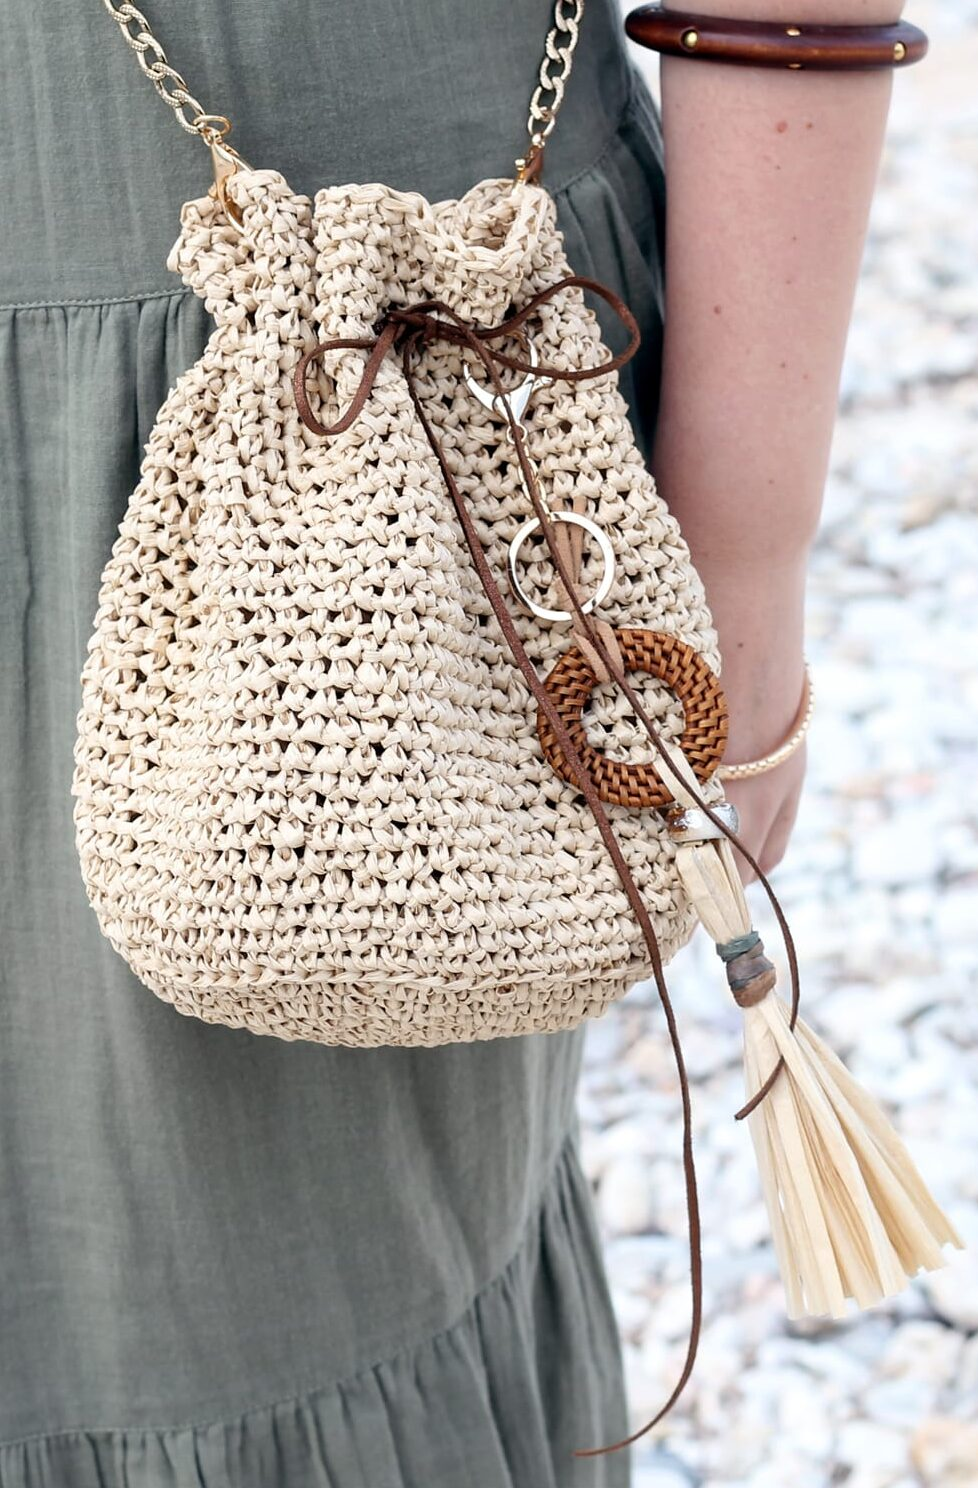 Crochet Drawstring Bag Pattern Handy Little Me